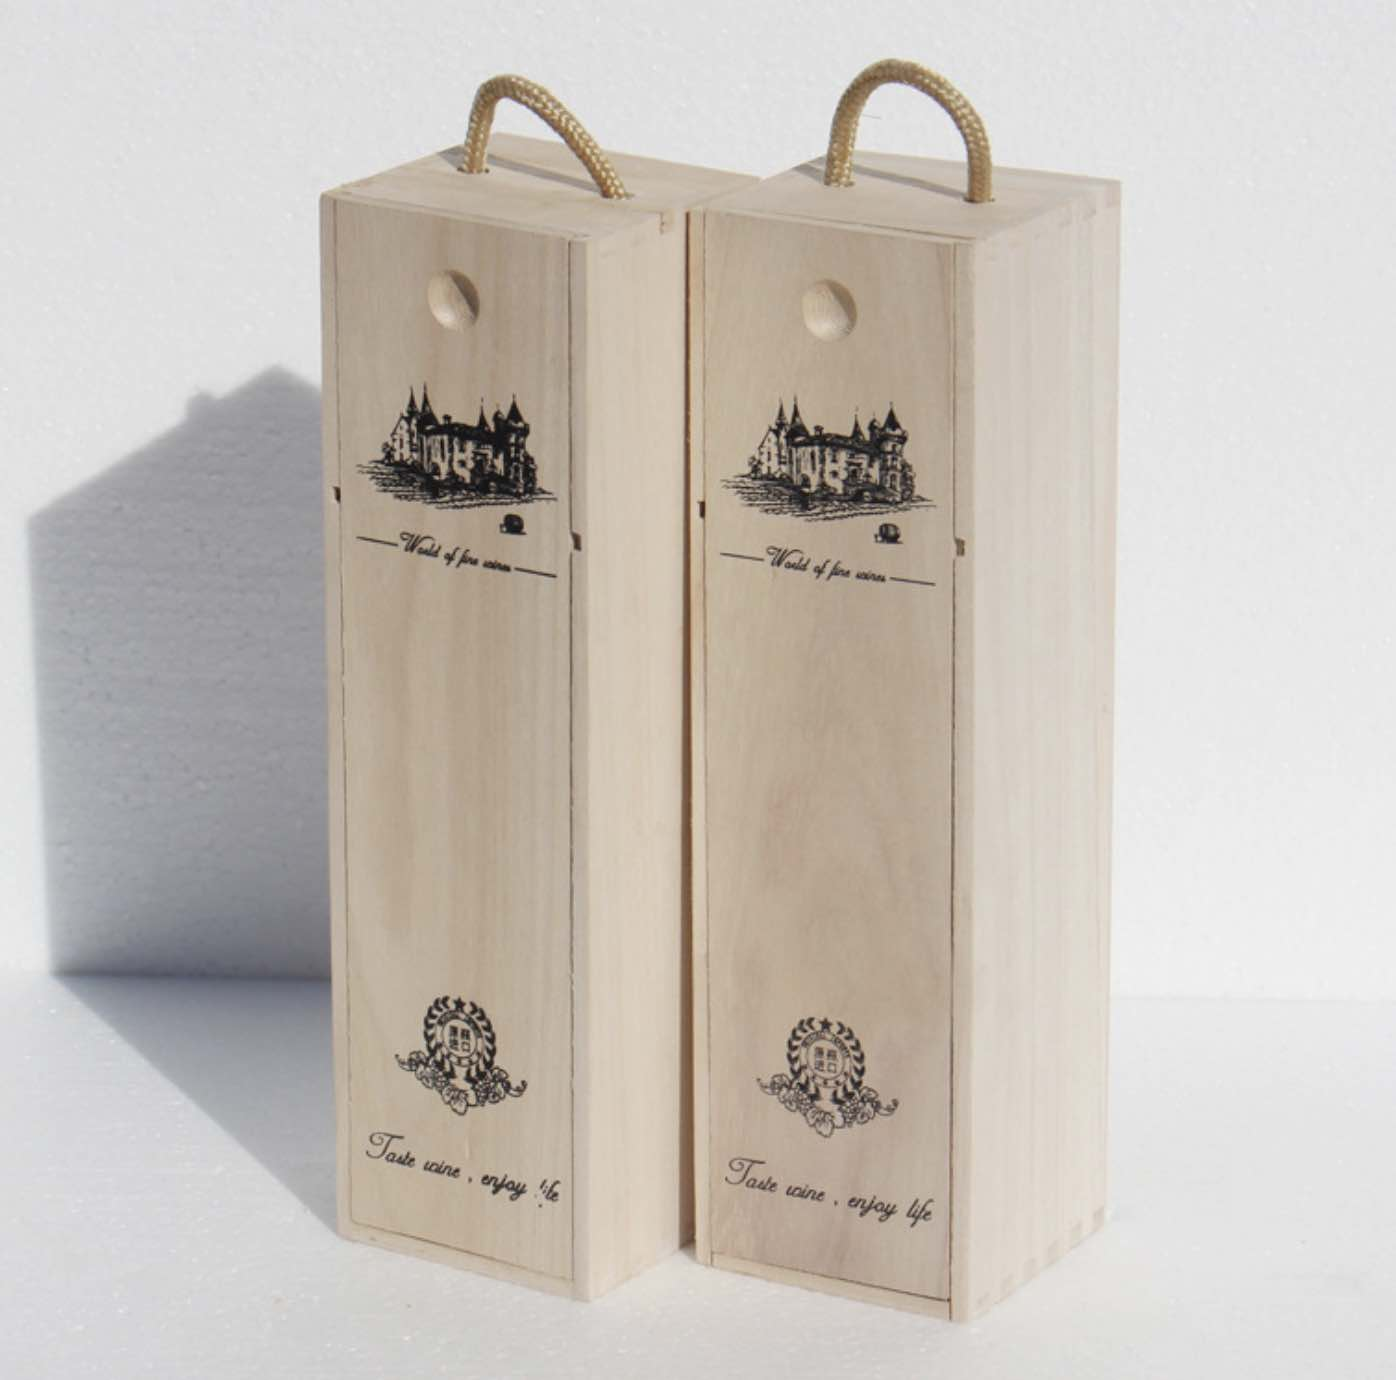 Two Wooden Wine Box